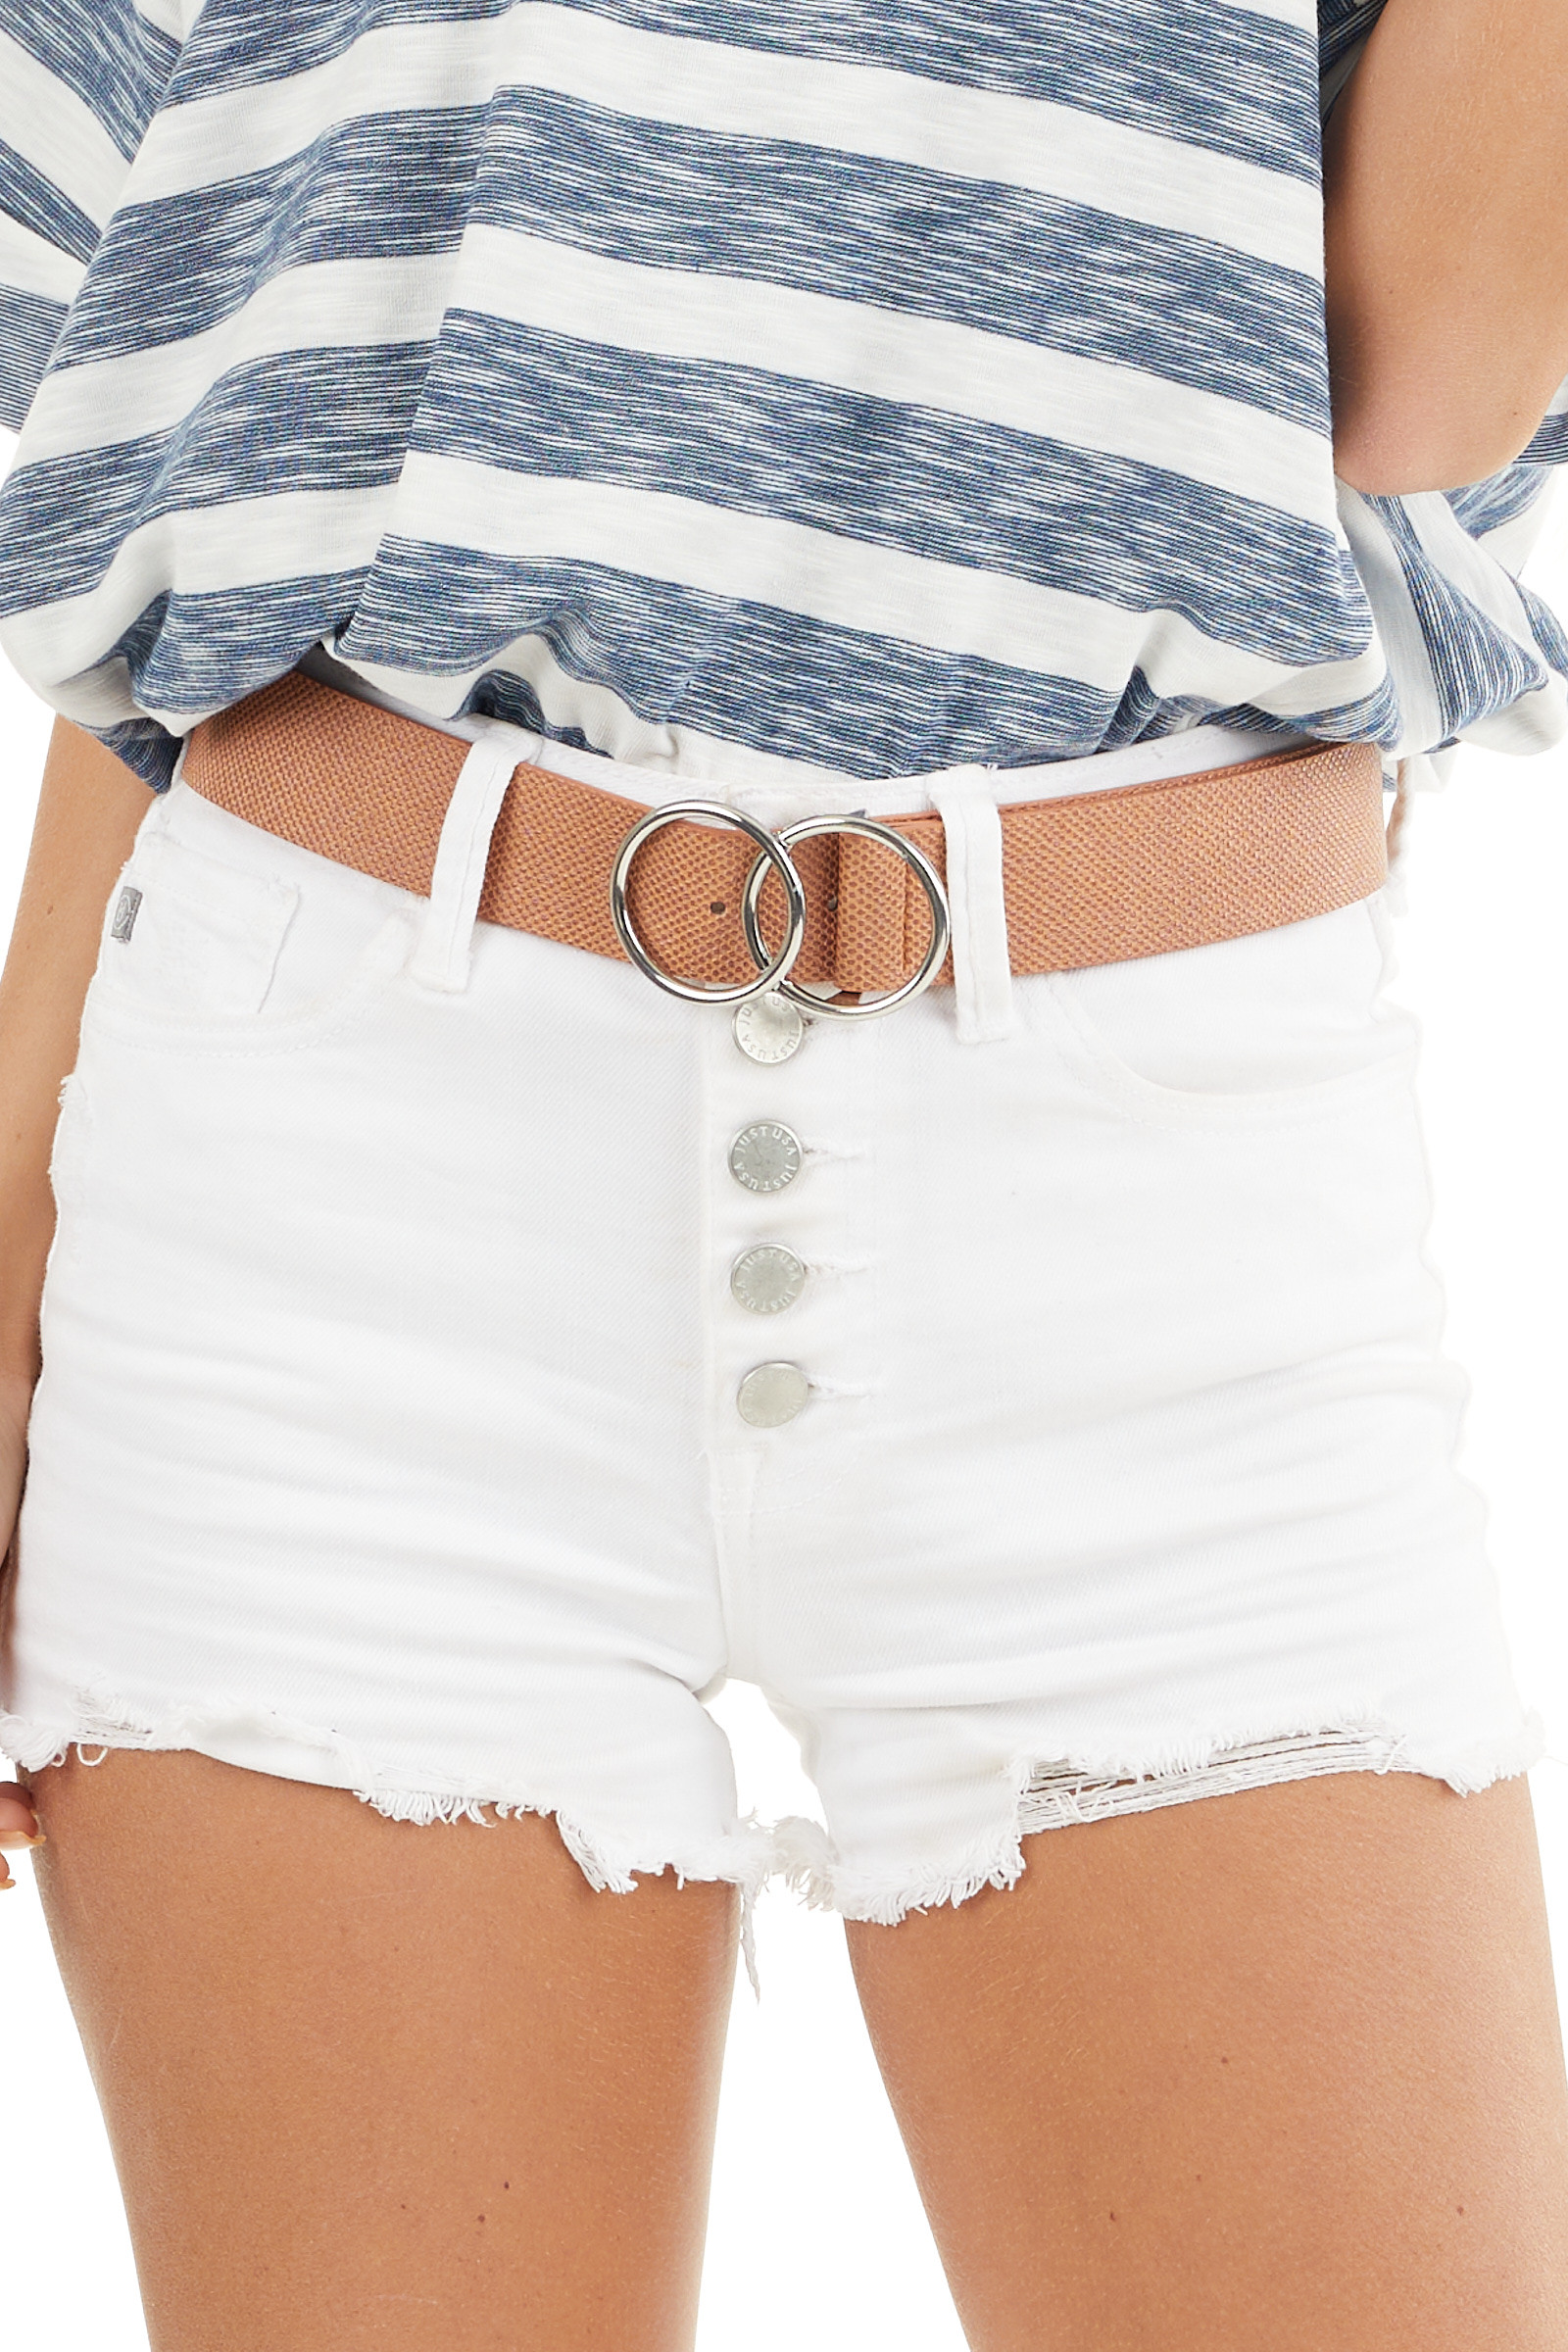 Toffee Faux Leather Belt with Silver Double Ring Buckle